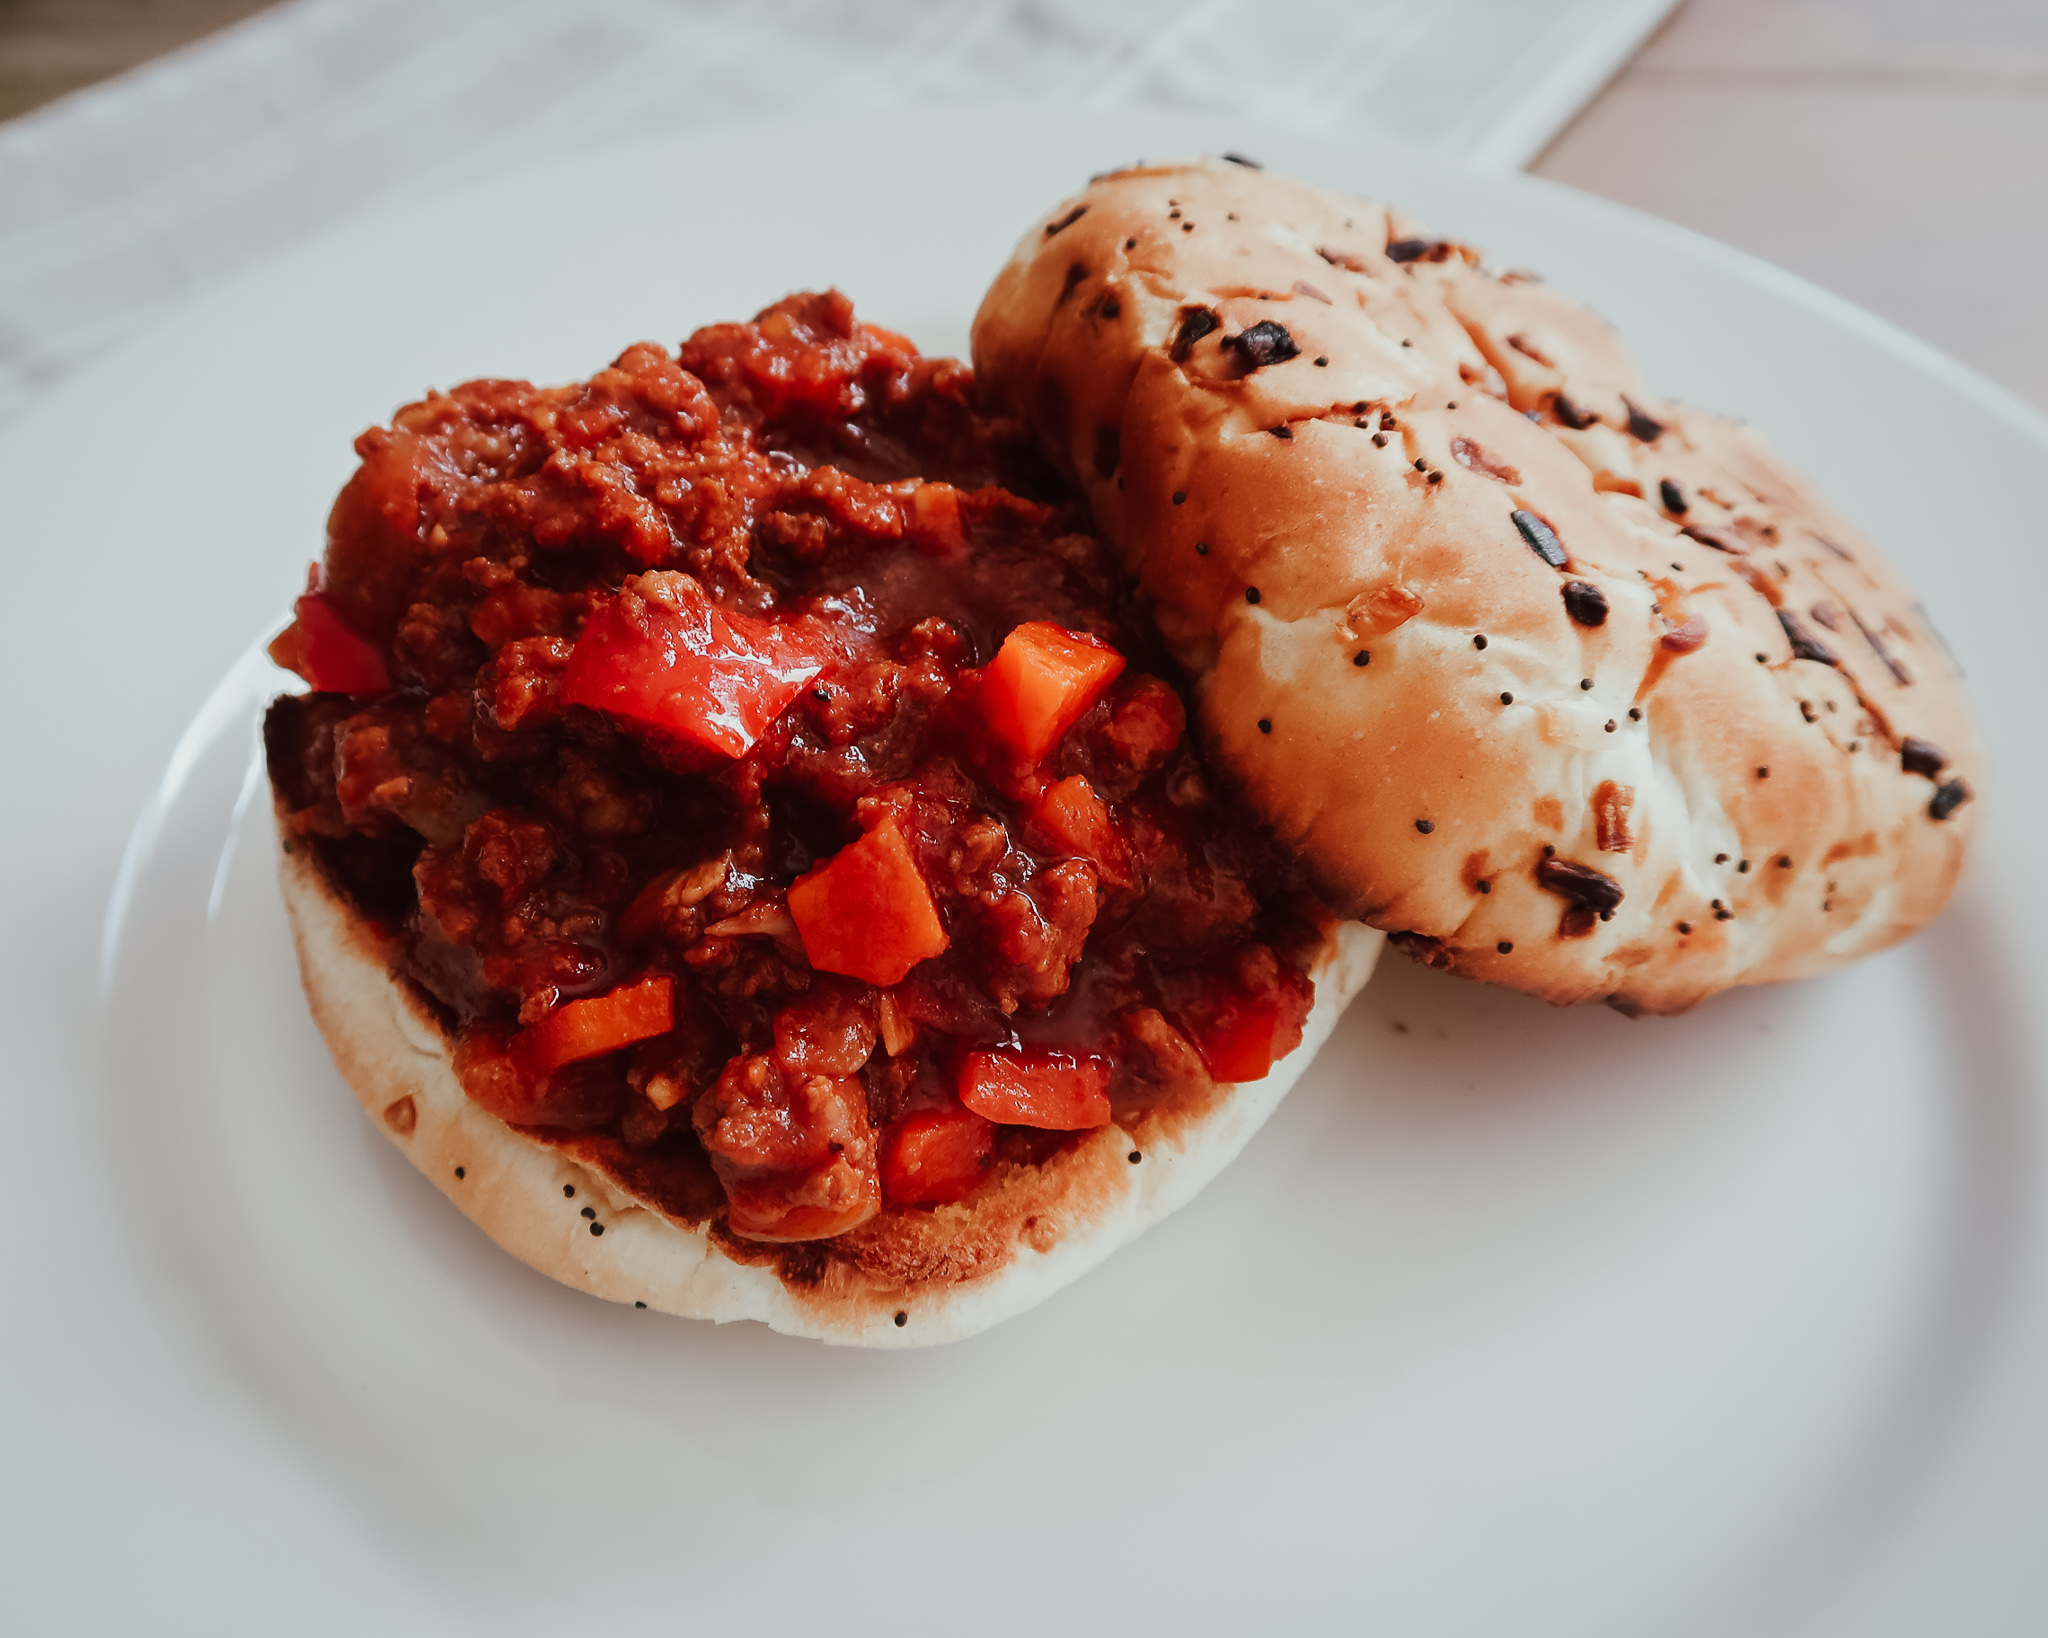 sams-sloppy-joes-2.jpg